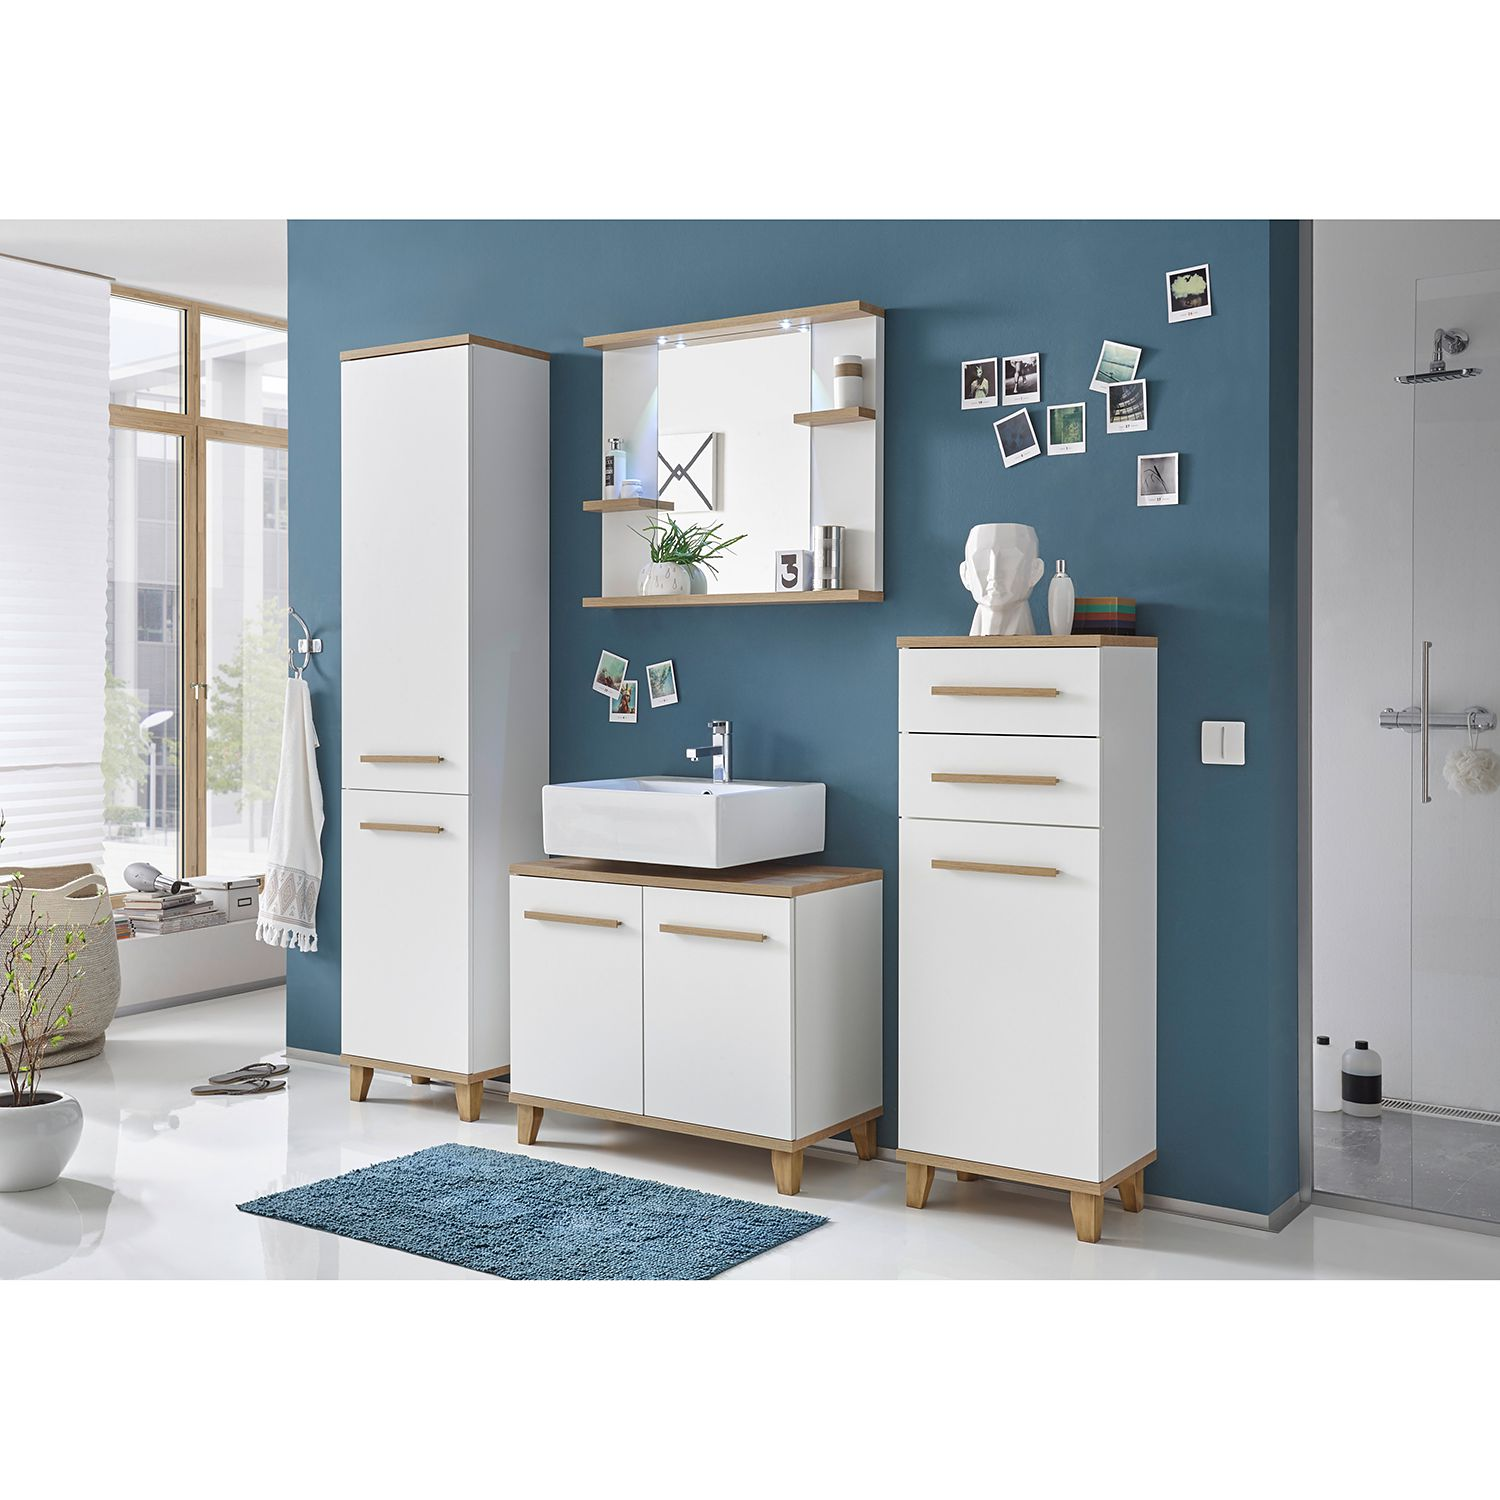 Badmöbel Set 80 Cm Breit Stehend Pin By Ladendirekt On Badmöbel Bathroom Bathroom